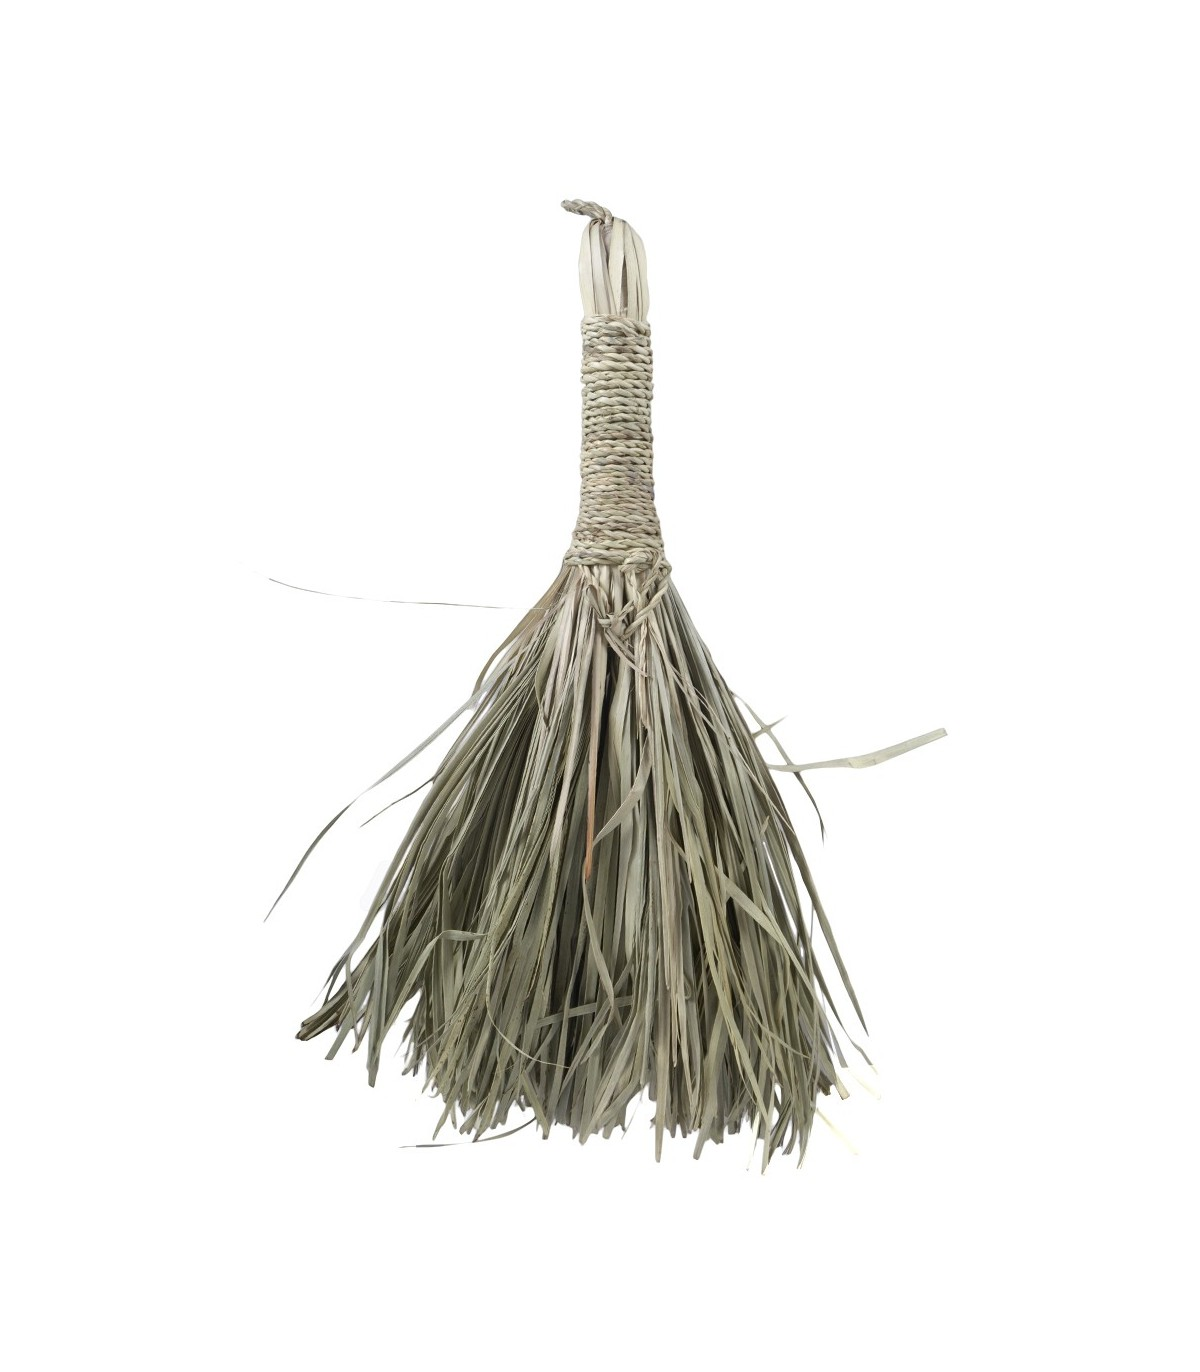 Carpet Broom Broom Palm Artisanal Hand 46 Cm Ideal For Carpets